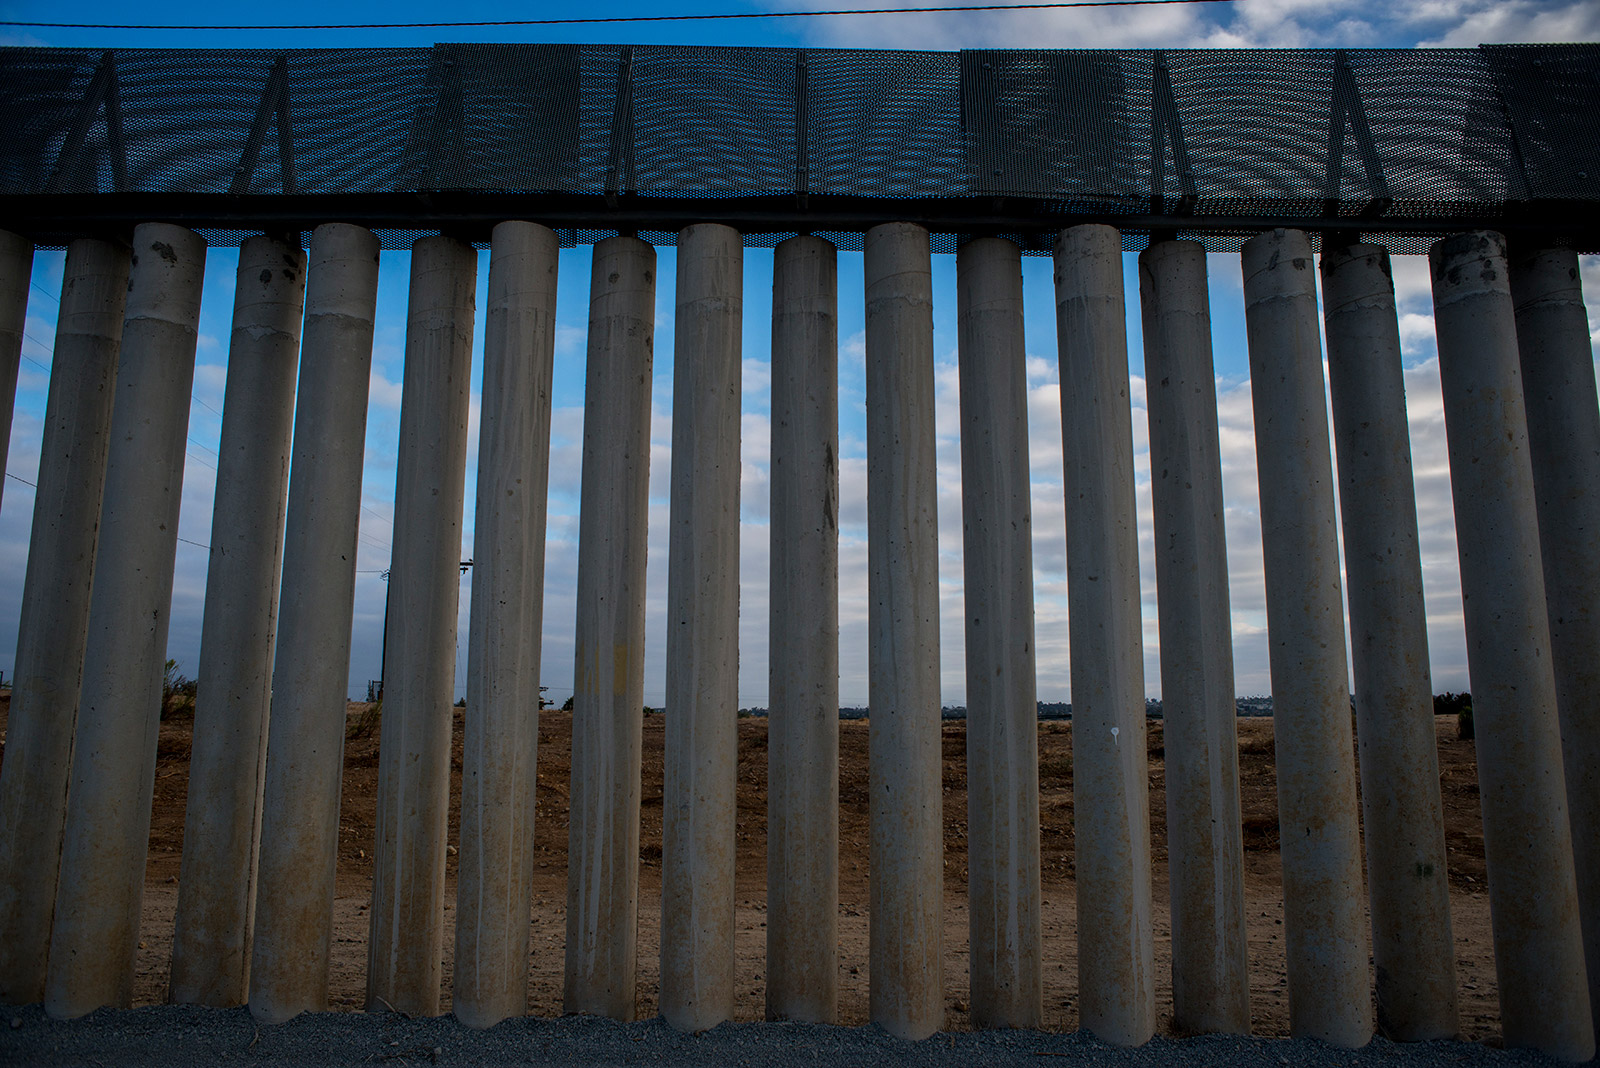 This variation of secondary fencing between the Pacific Ocean and the San Ysidro Port of Entry is made of tall concrete pillars and is topped with metal sheeting. This fencing, shown on Aug. 16, 2017, is designed to stop people and vehicles from entering the U.S. illegally. <em>(Brandon Quester/inewsource)</em>